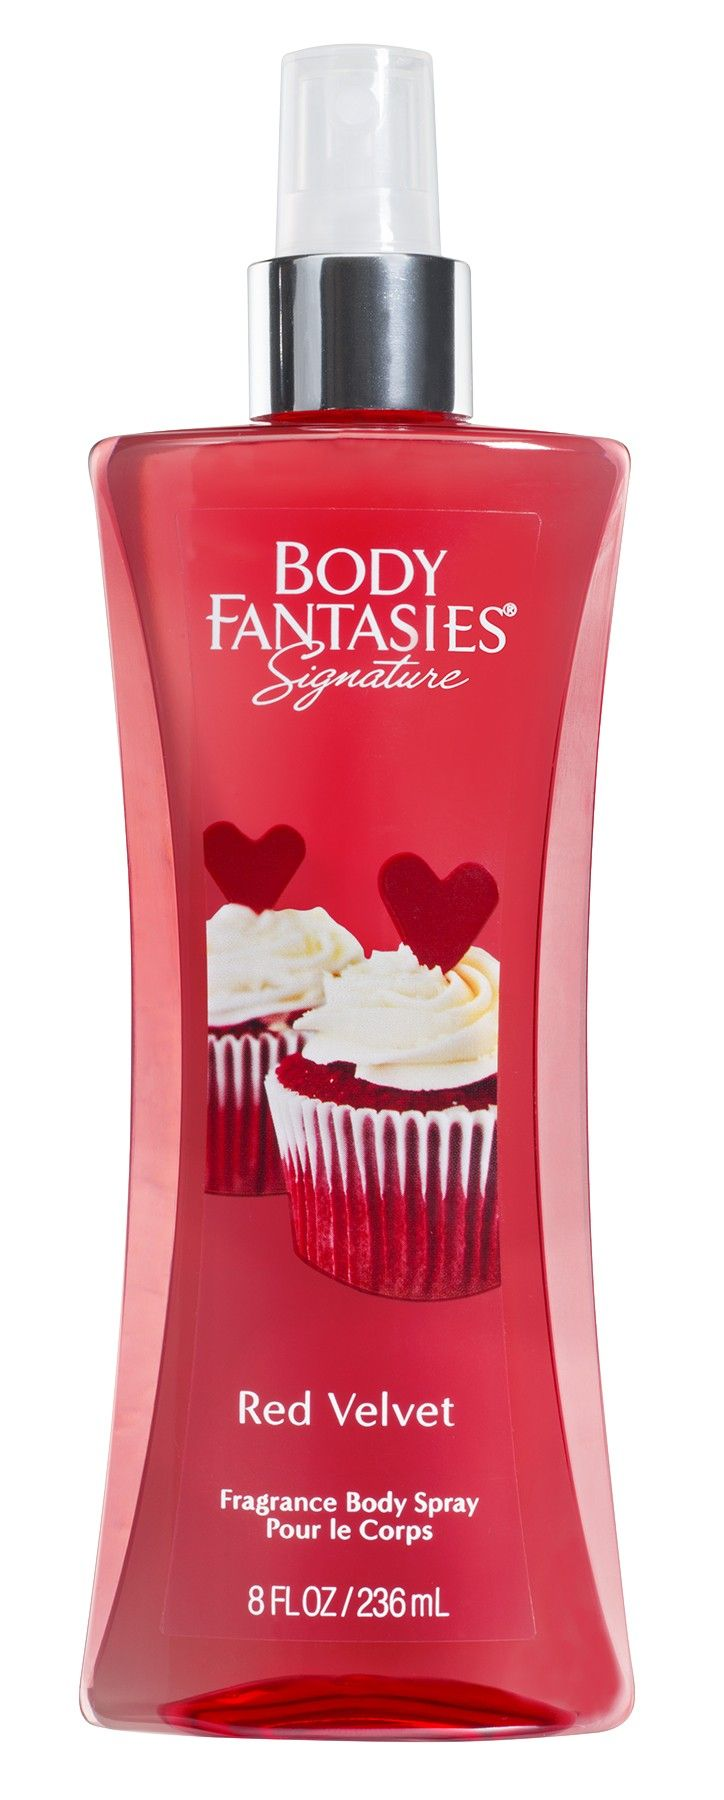 Body Fantasies Signature 8oz Red Velvet Fragrance Body Spray